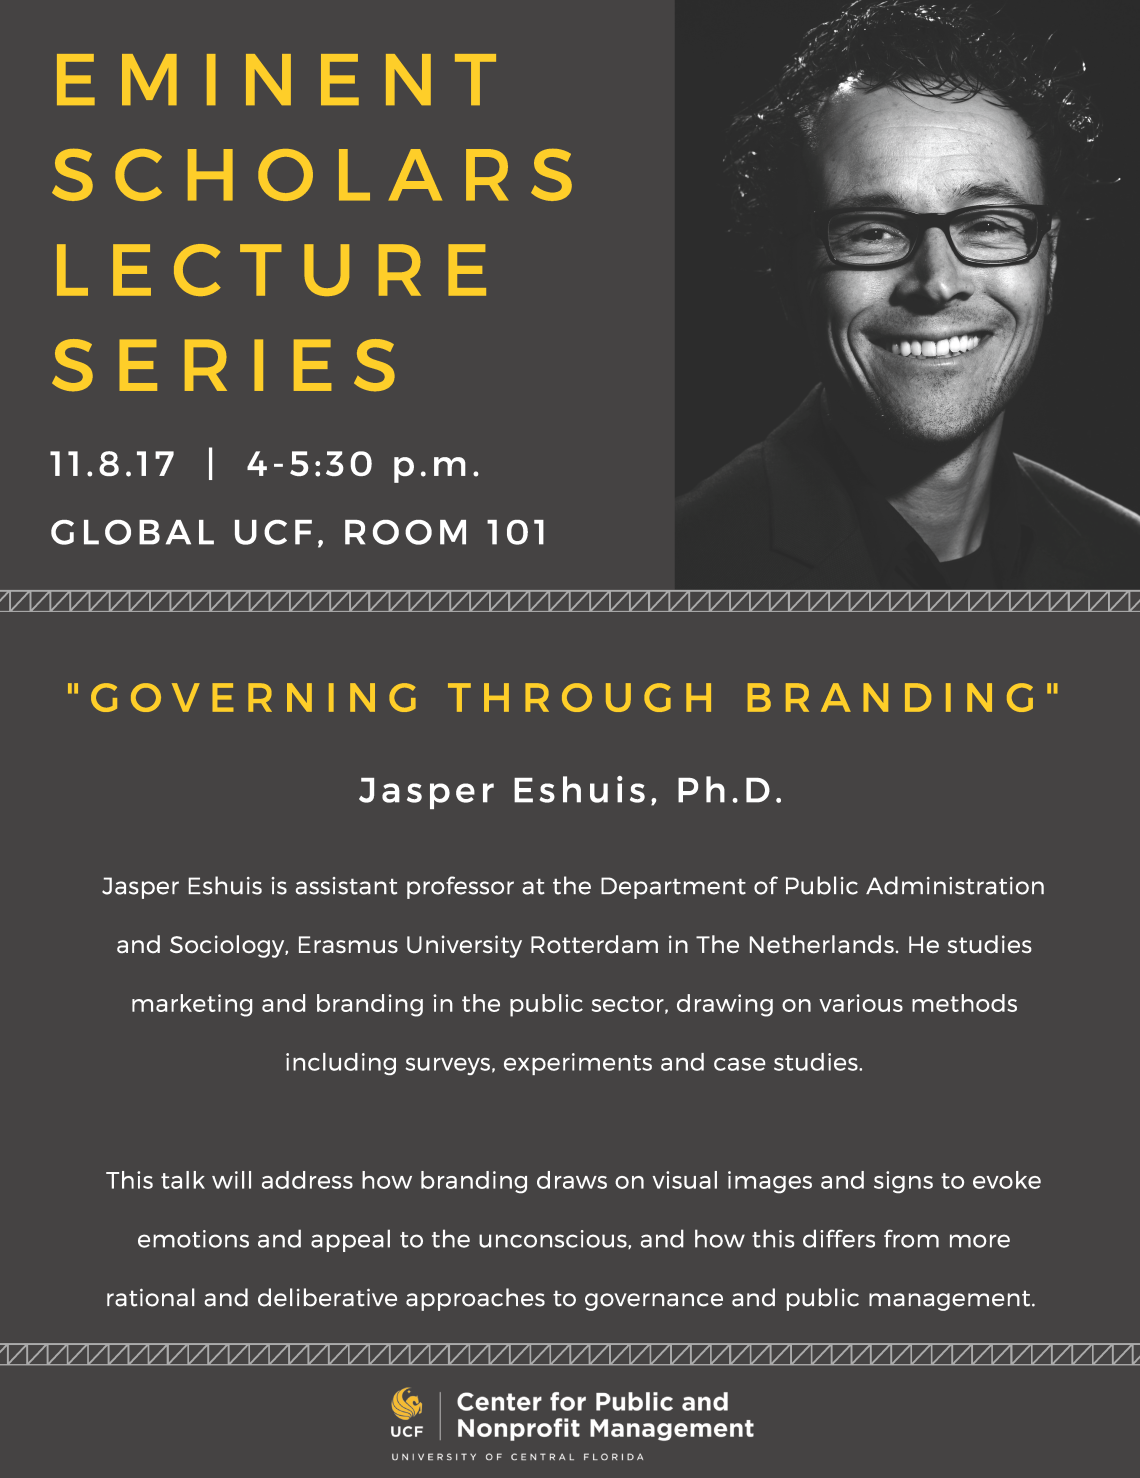 Jsper Eshuis, Ph.D. | 11.8.17 | 4-5:30pm | Global UCF, Room 101